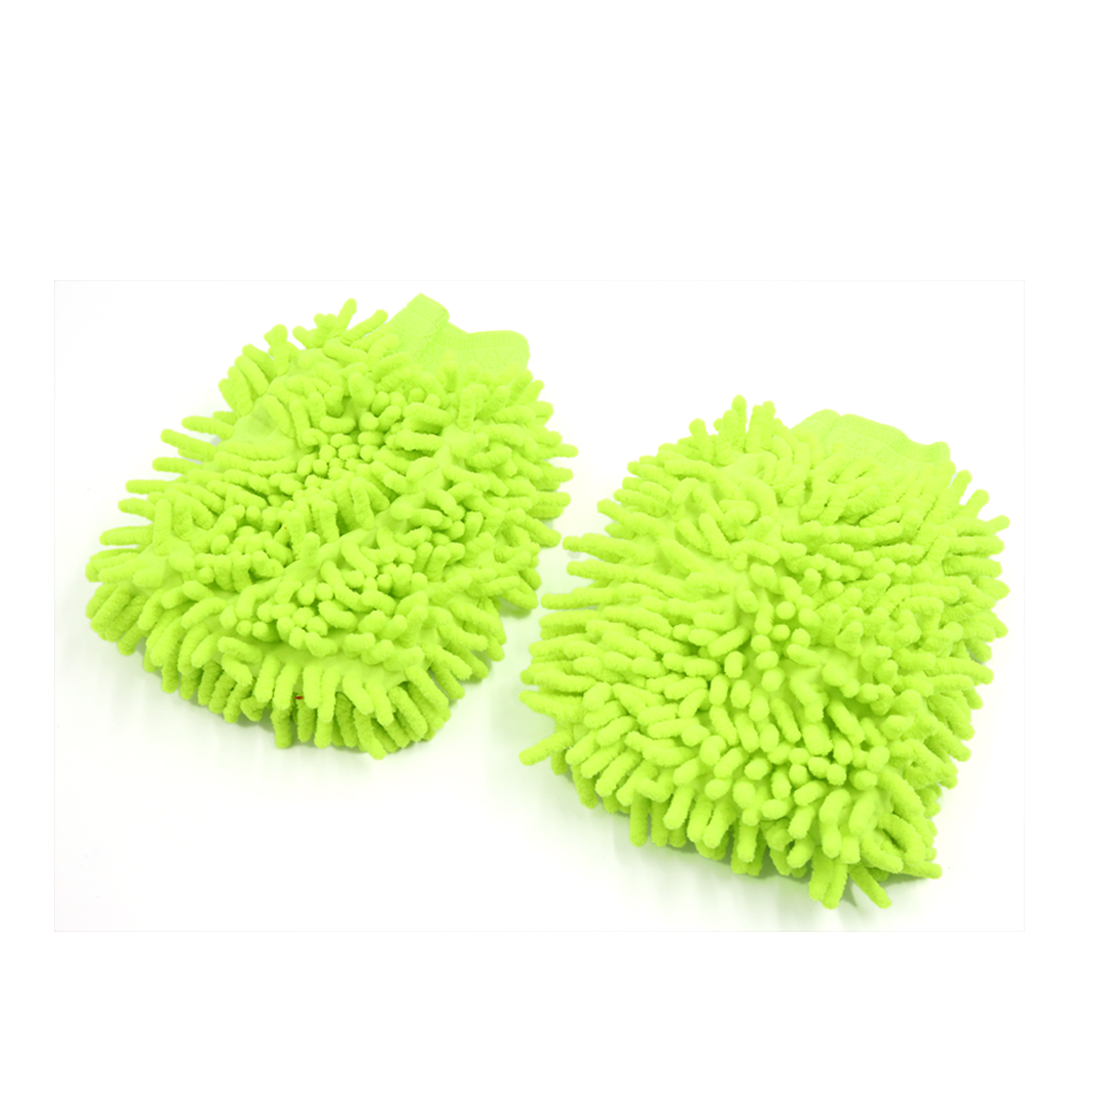 2Pcs Green Chenille Brush Microfiber Washing Glove Dusting Cleaning for Car